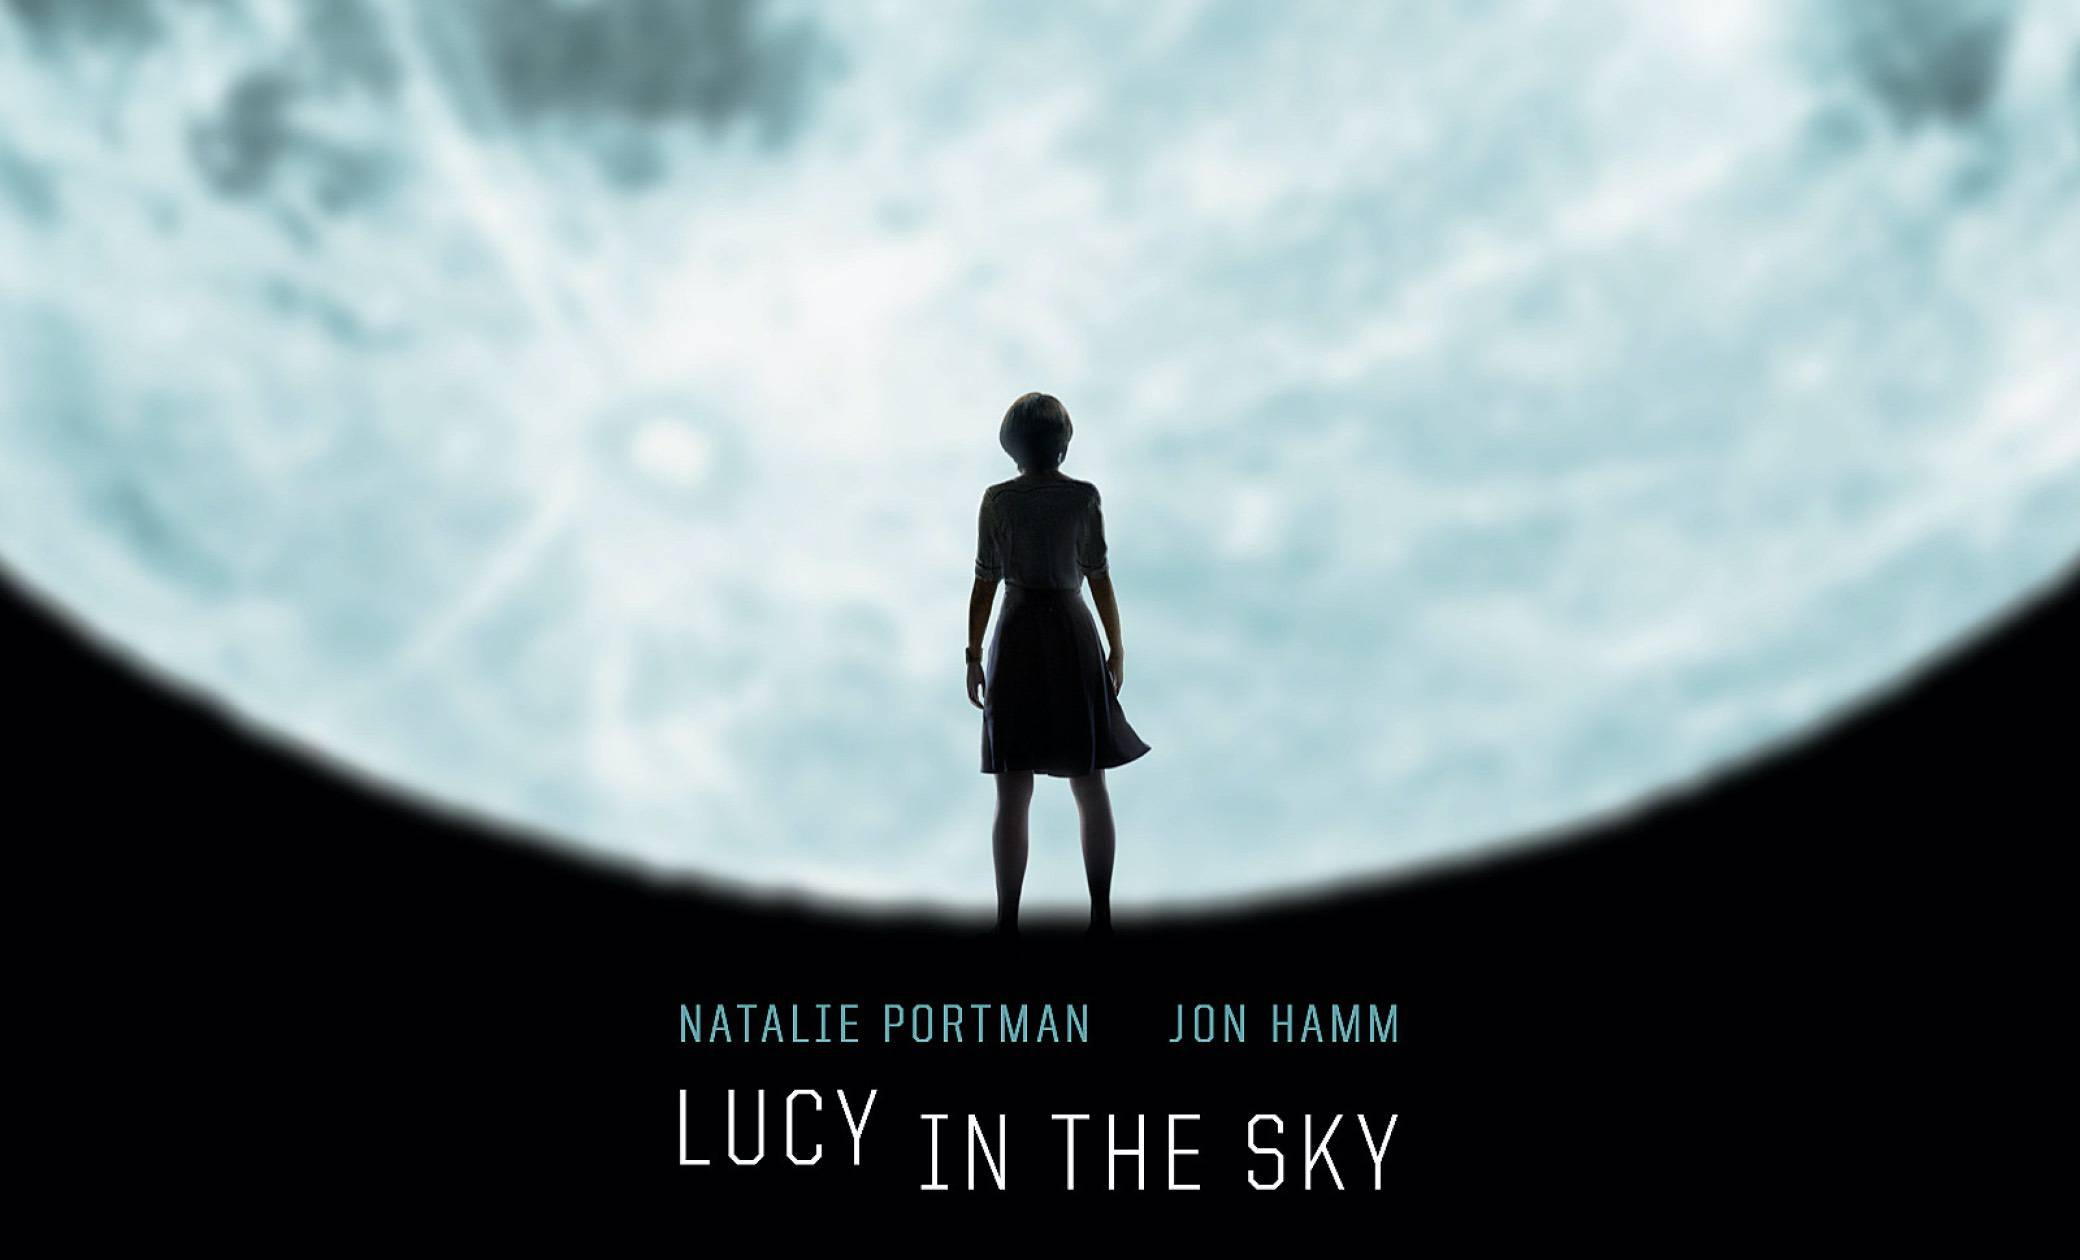 lucy-in-the-sky image